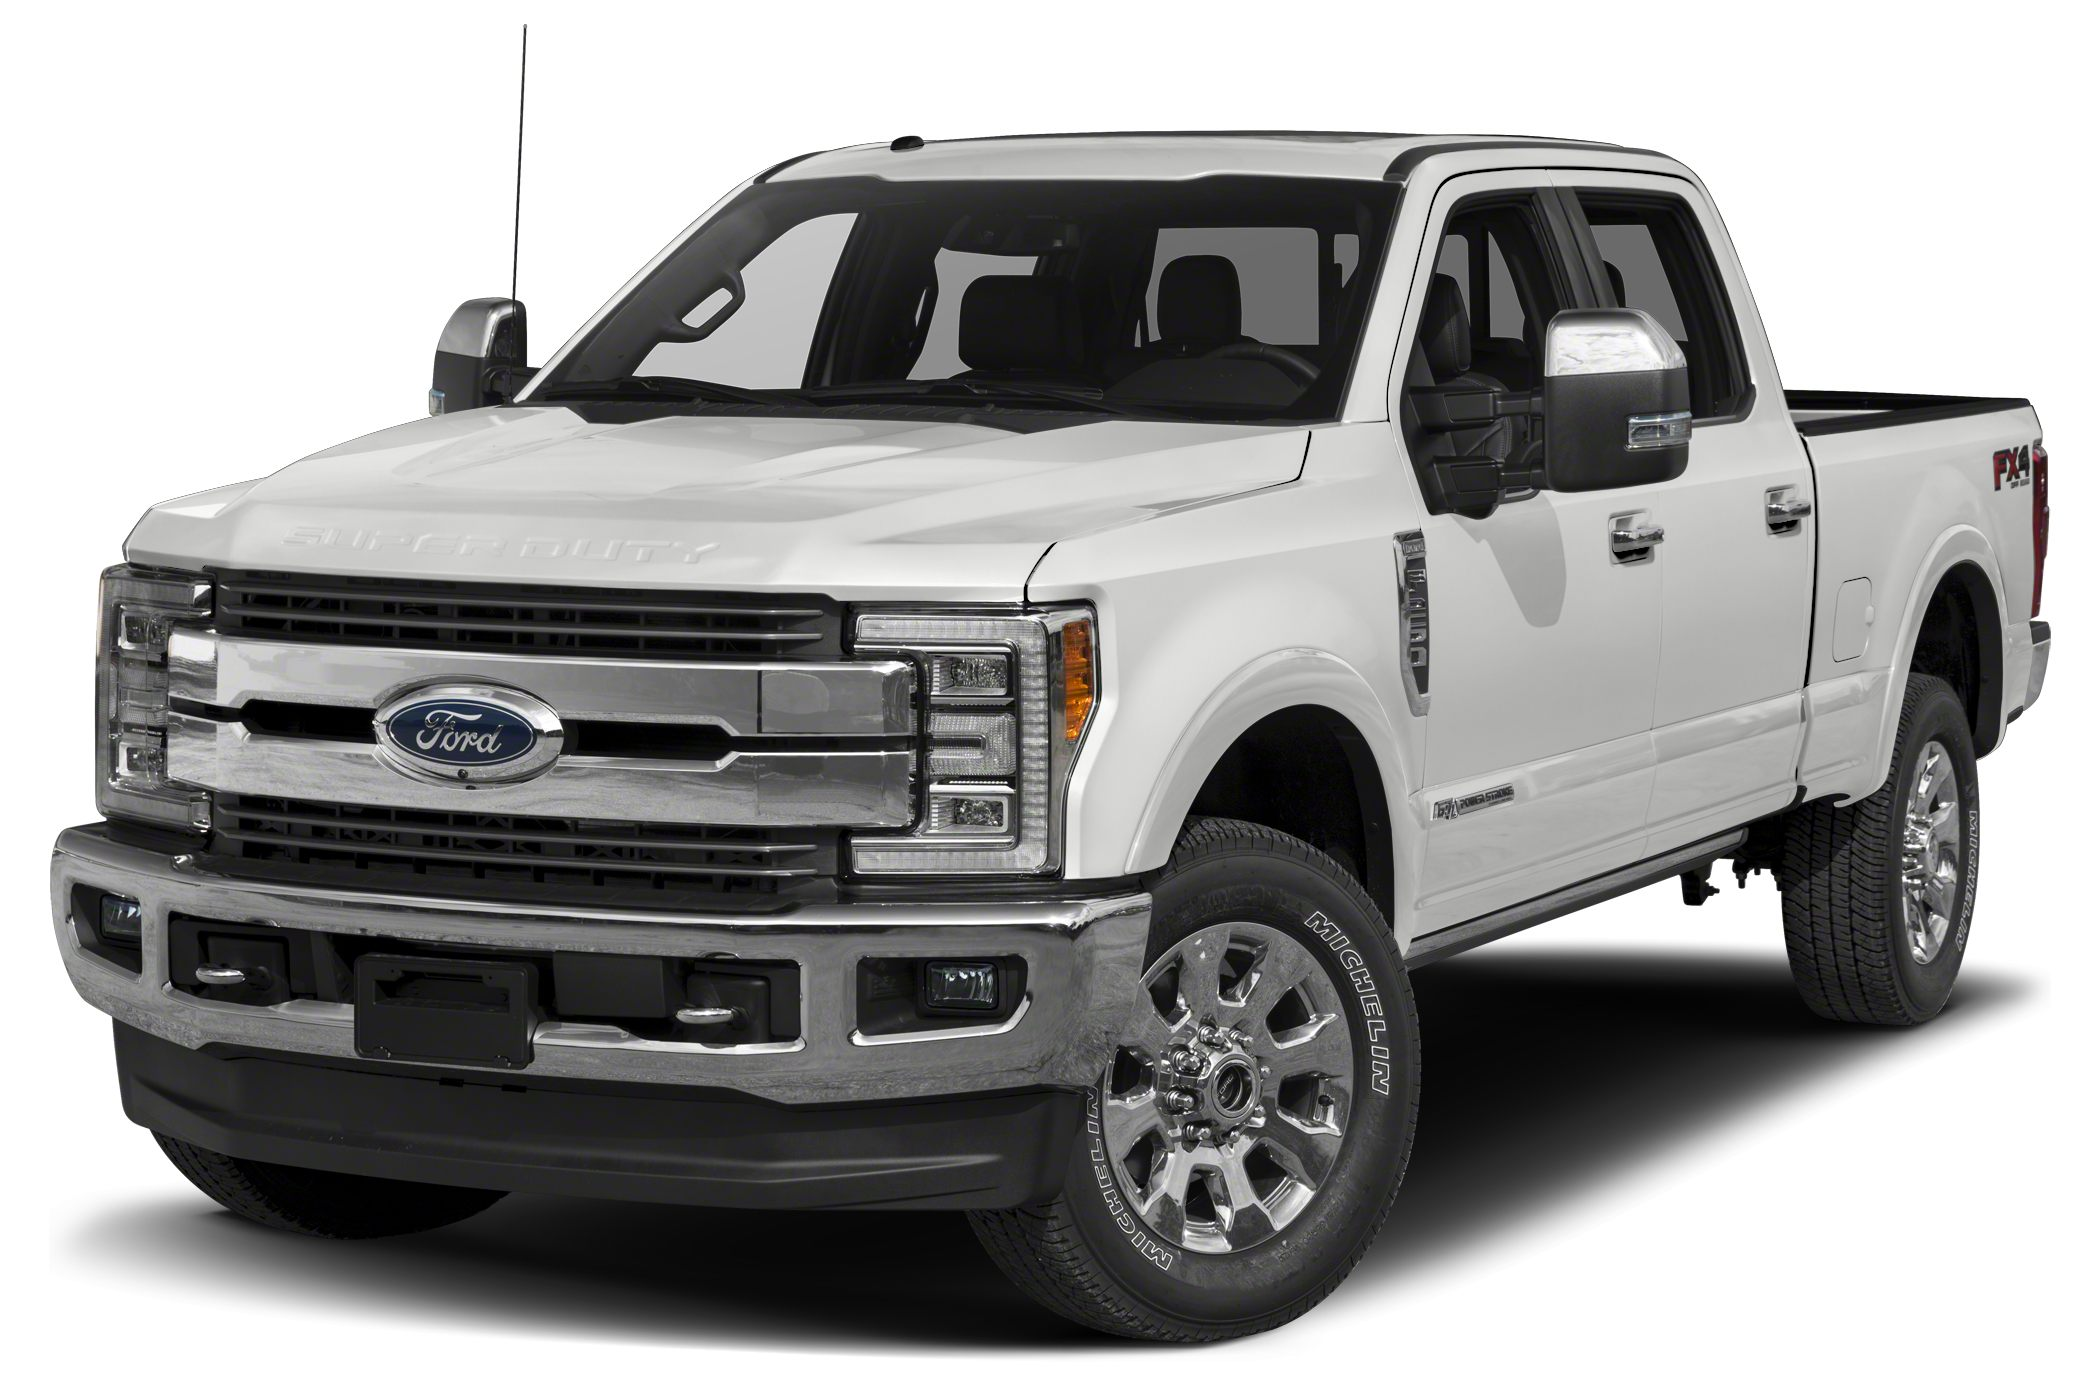 platinum cars images king ranch crew super f series duty cab ford and wallpaper front